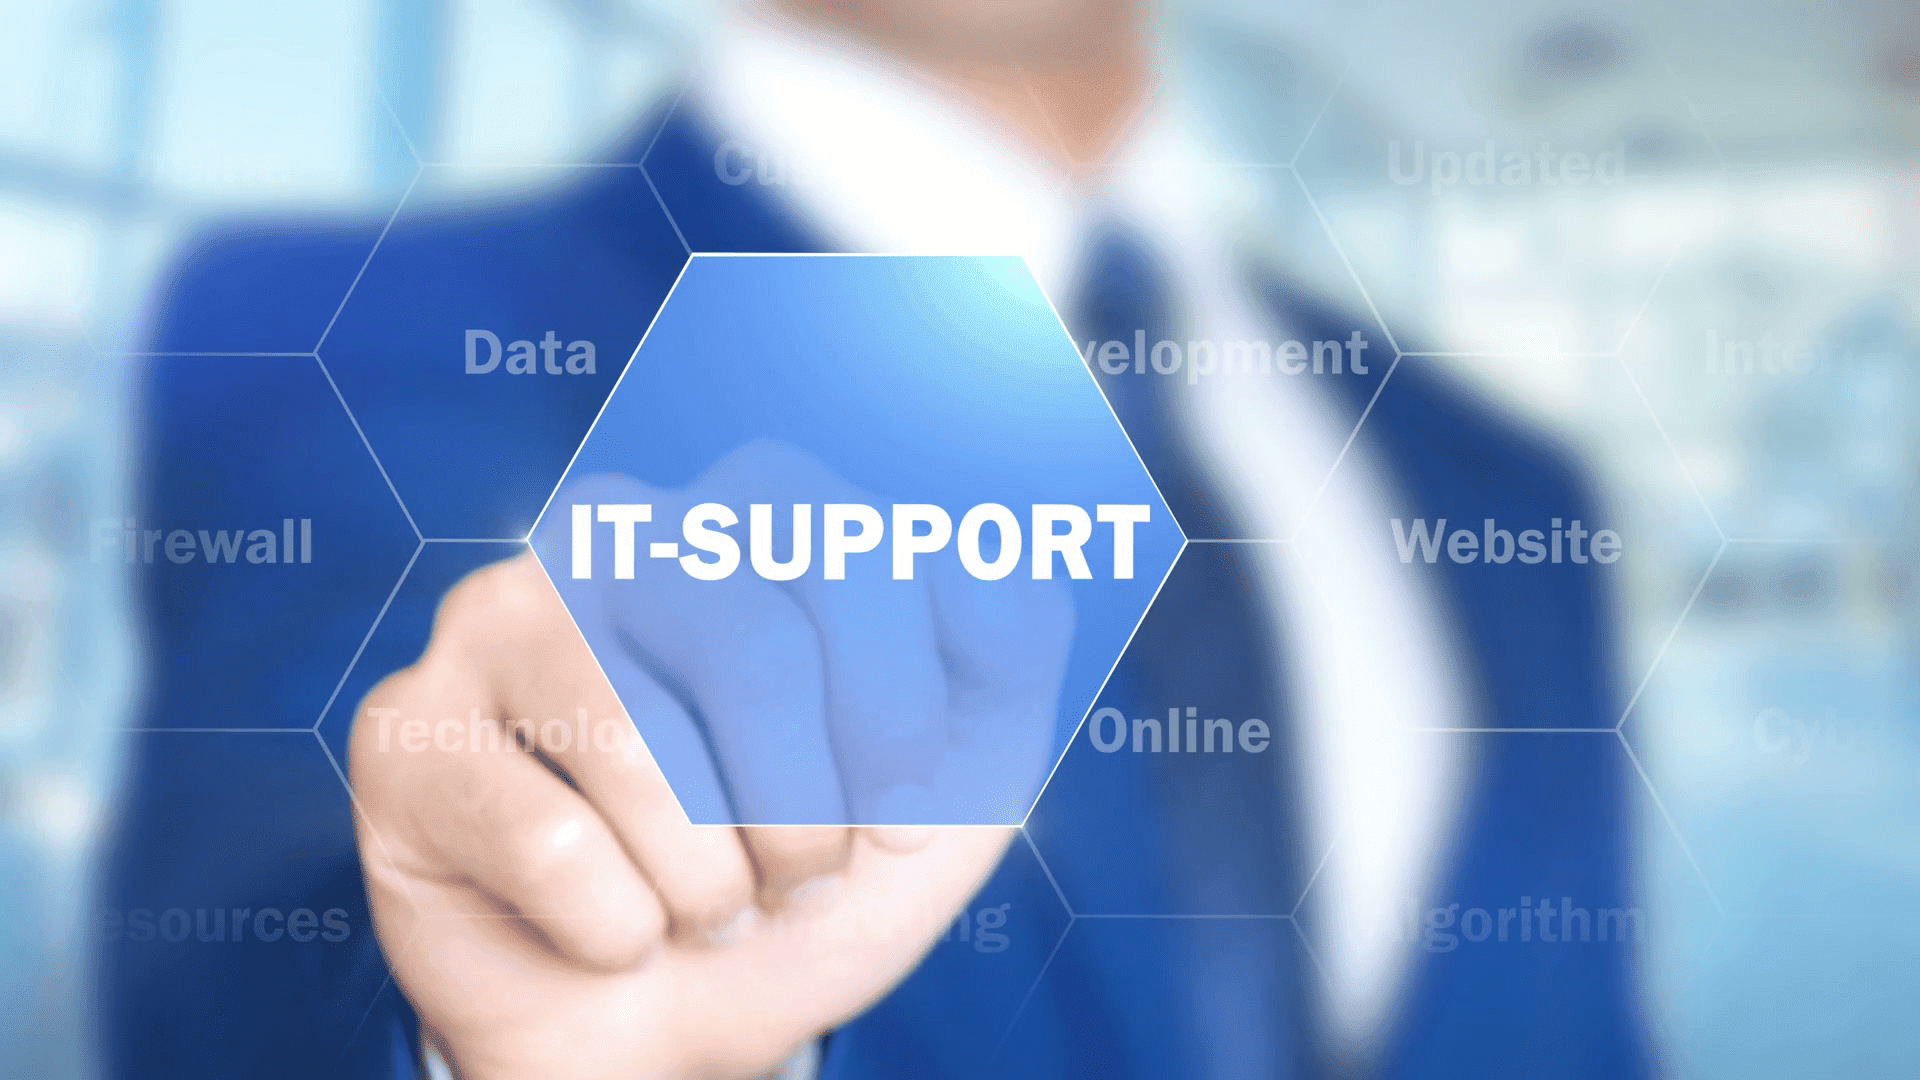 IT Services and Solutions Newcastle